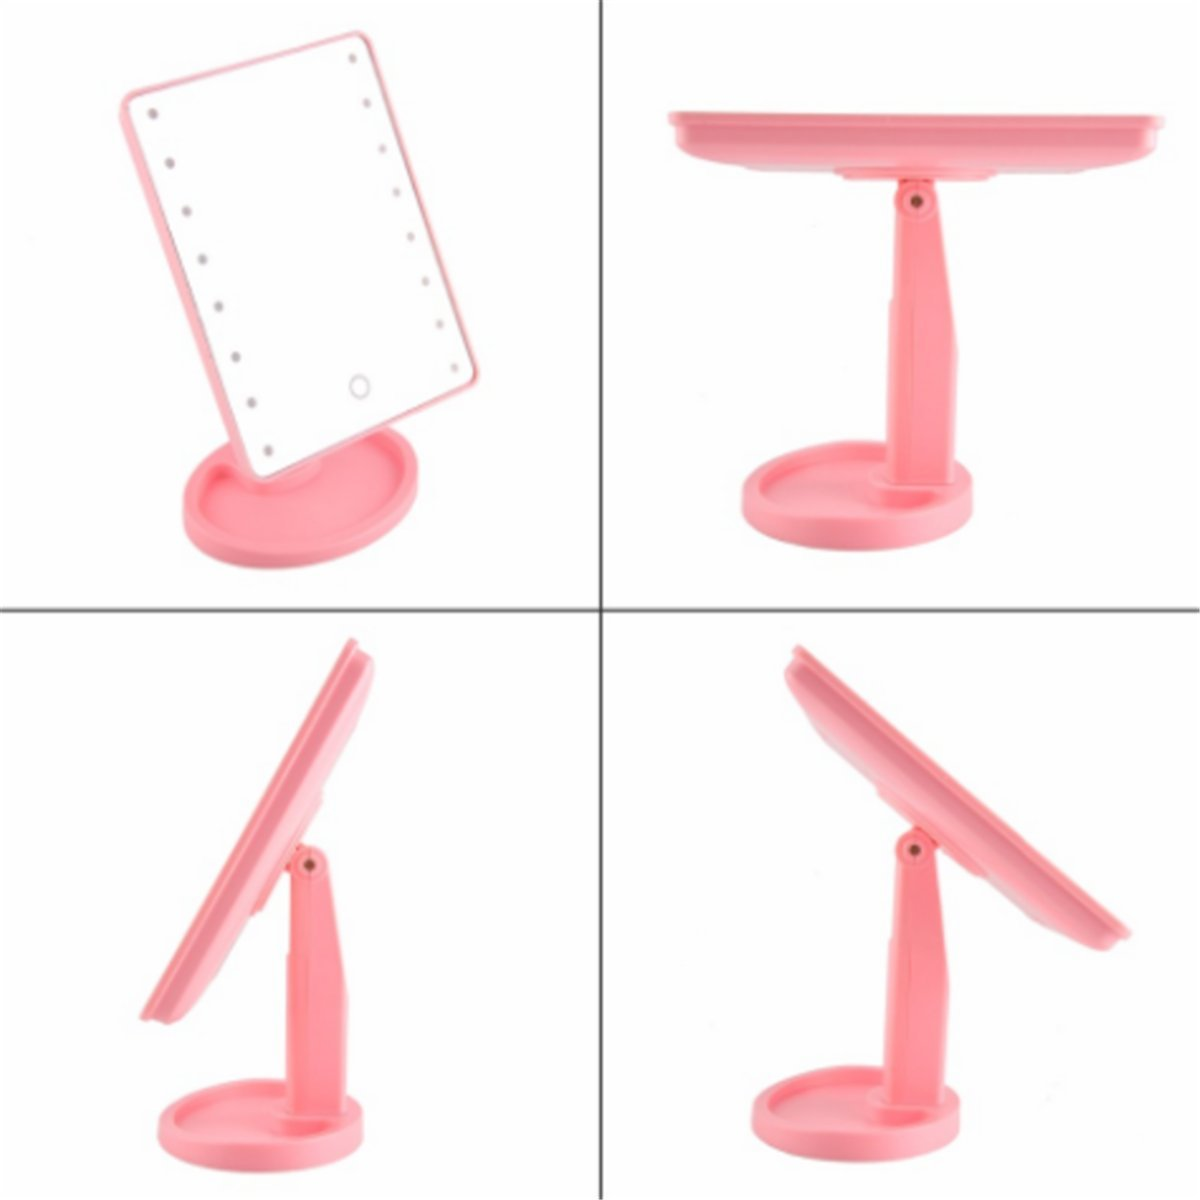 LED Lighted Makeup Mirror, Rotatable & Portable 22 LED Lighted 10X Magnifying Large vanity Mirror with Touch Screen (Pink)